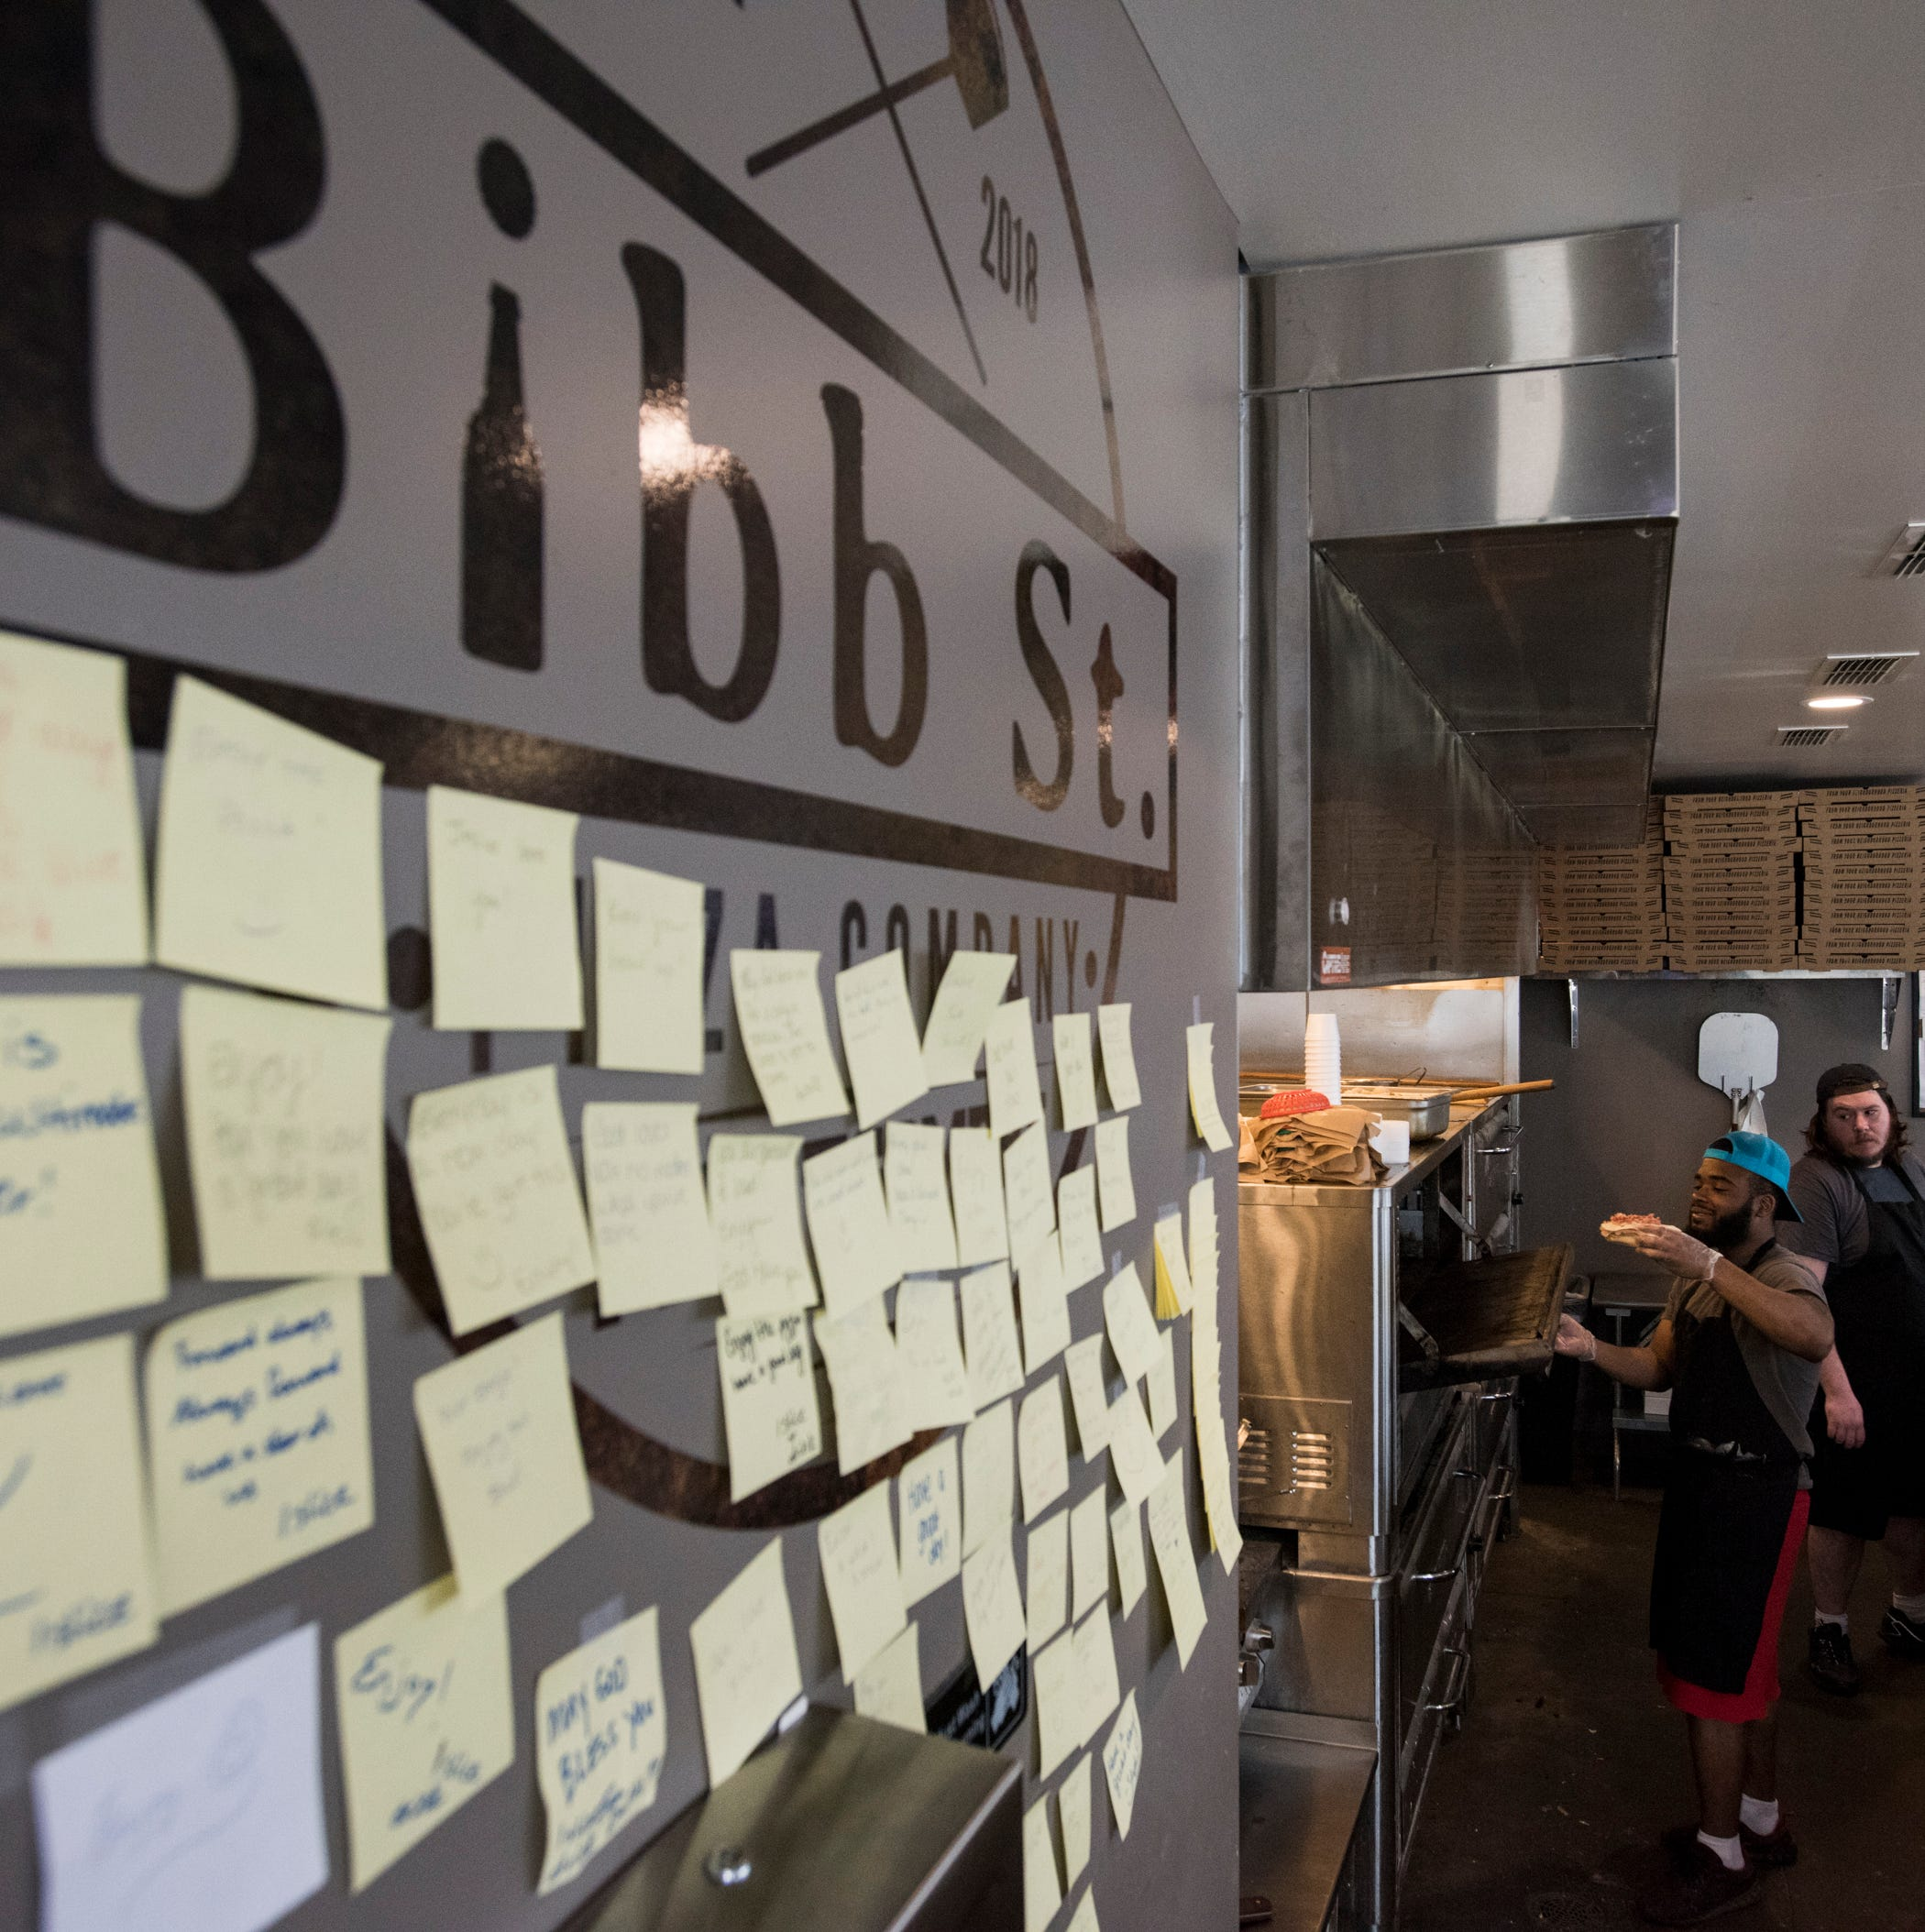 At Bibb St. Pizza restaurant, people buy meals, leave notes for homeless